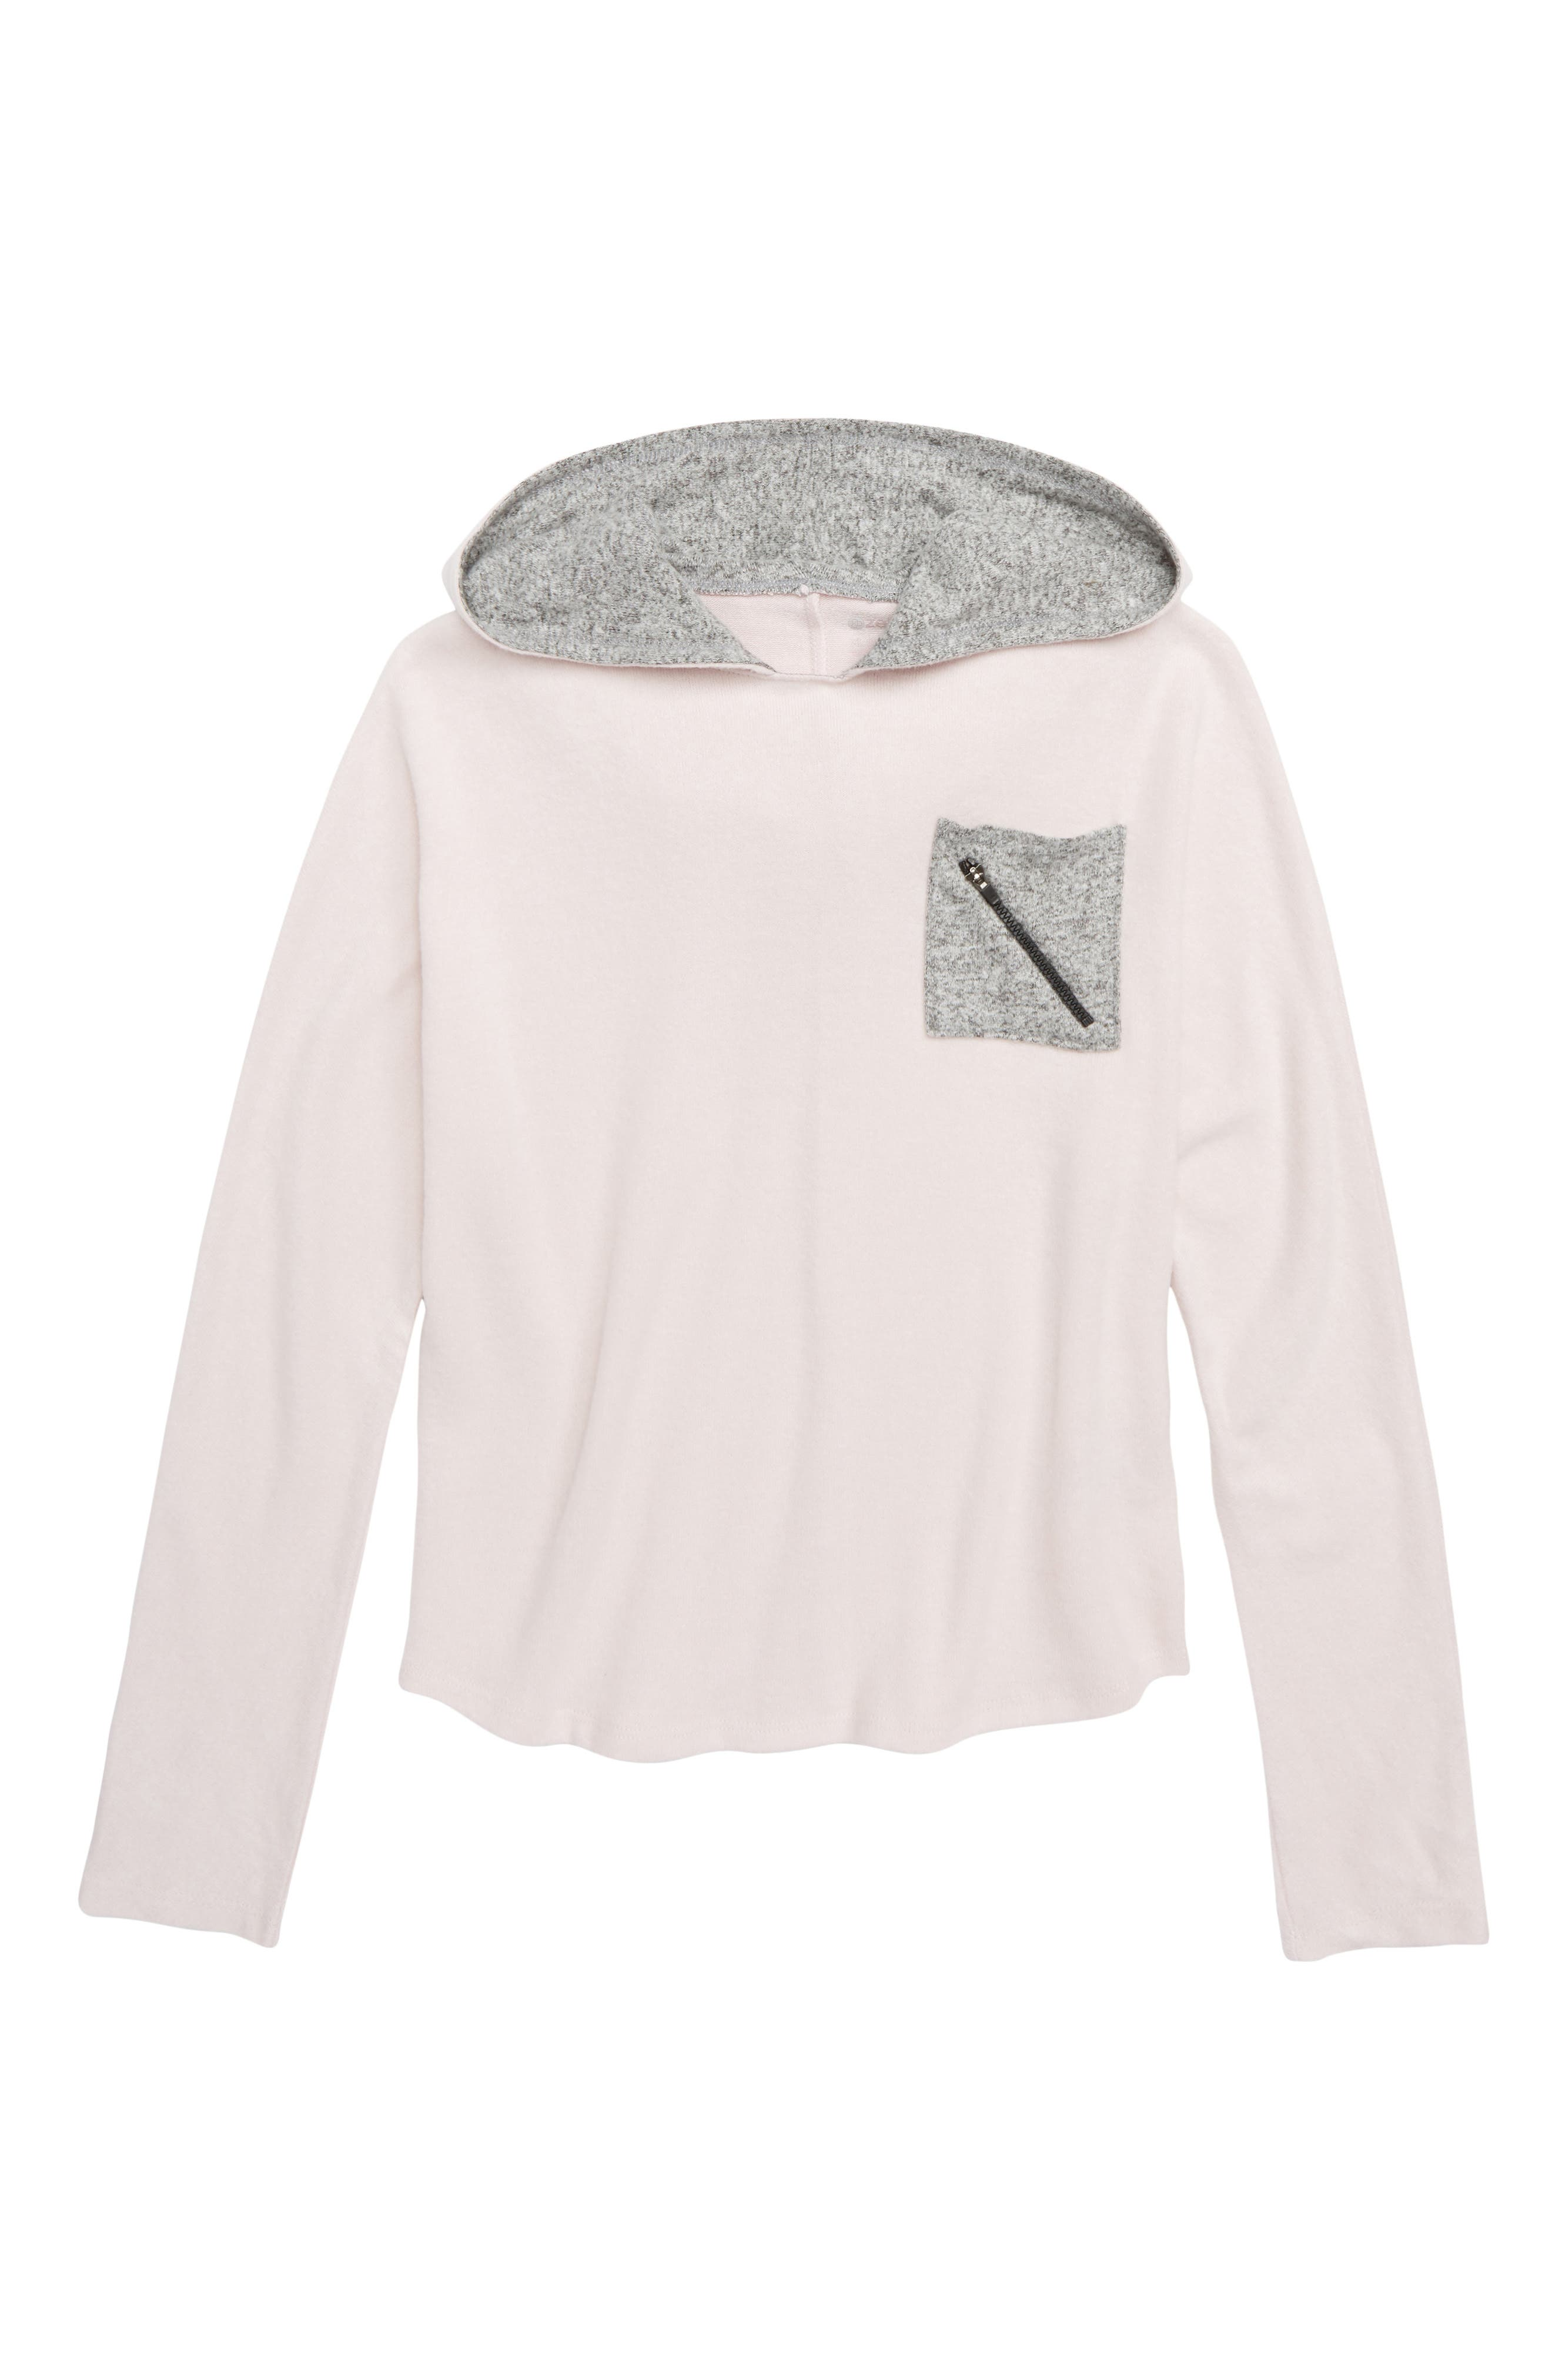 Contrast Pocket Hooded Pullover,                             Main thumbnail 1, color,                             PINK CAKE HEATHER